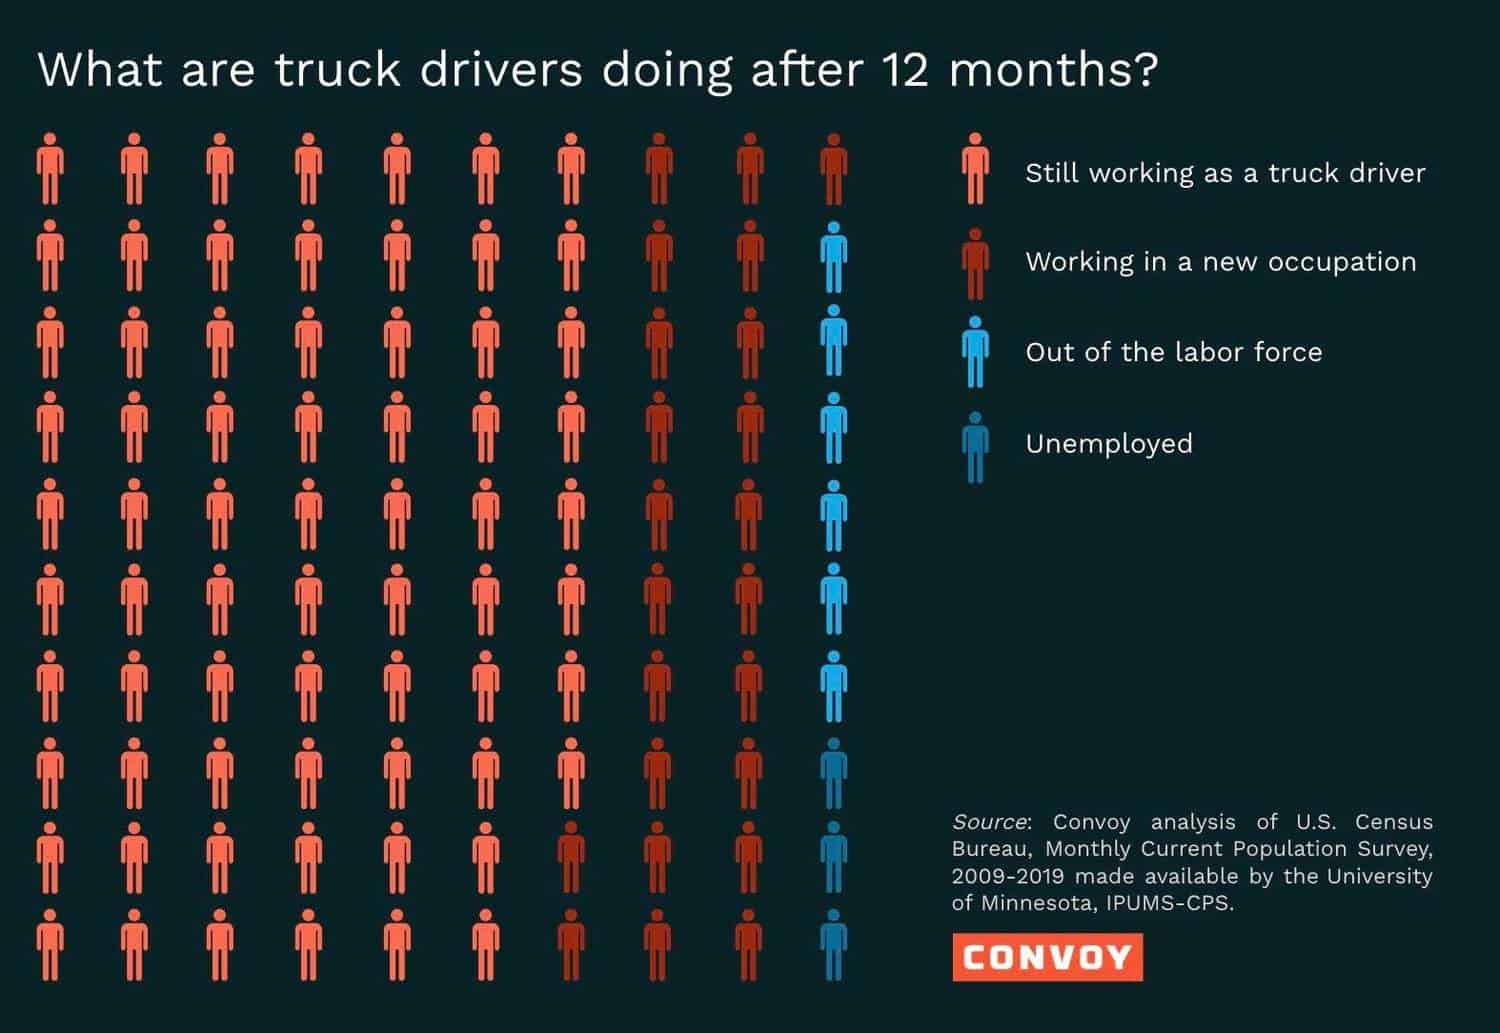 Trucking companies and drivers' turnovers dilemma